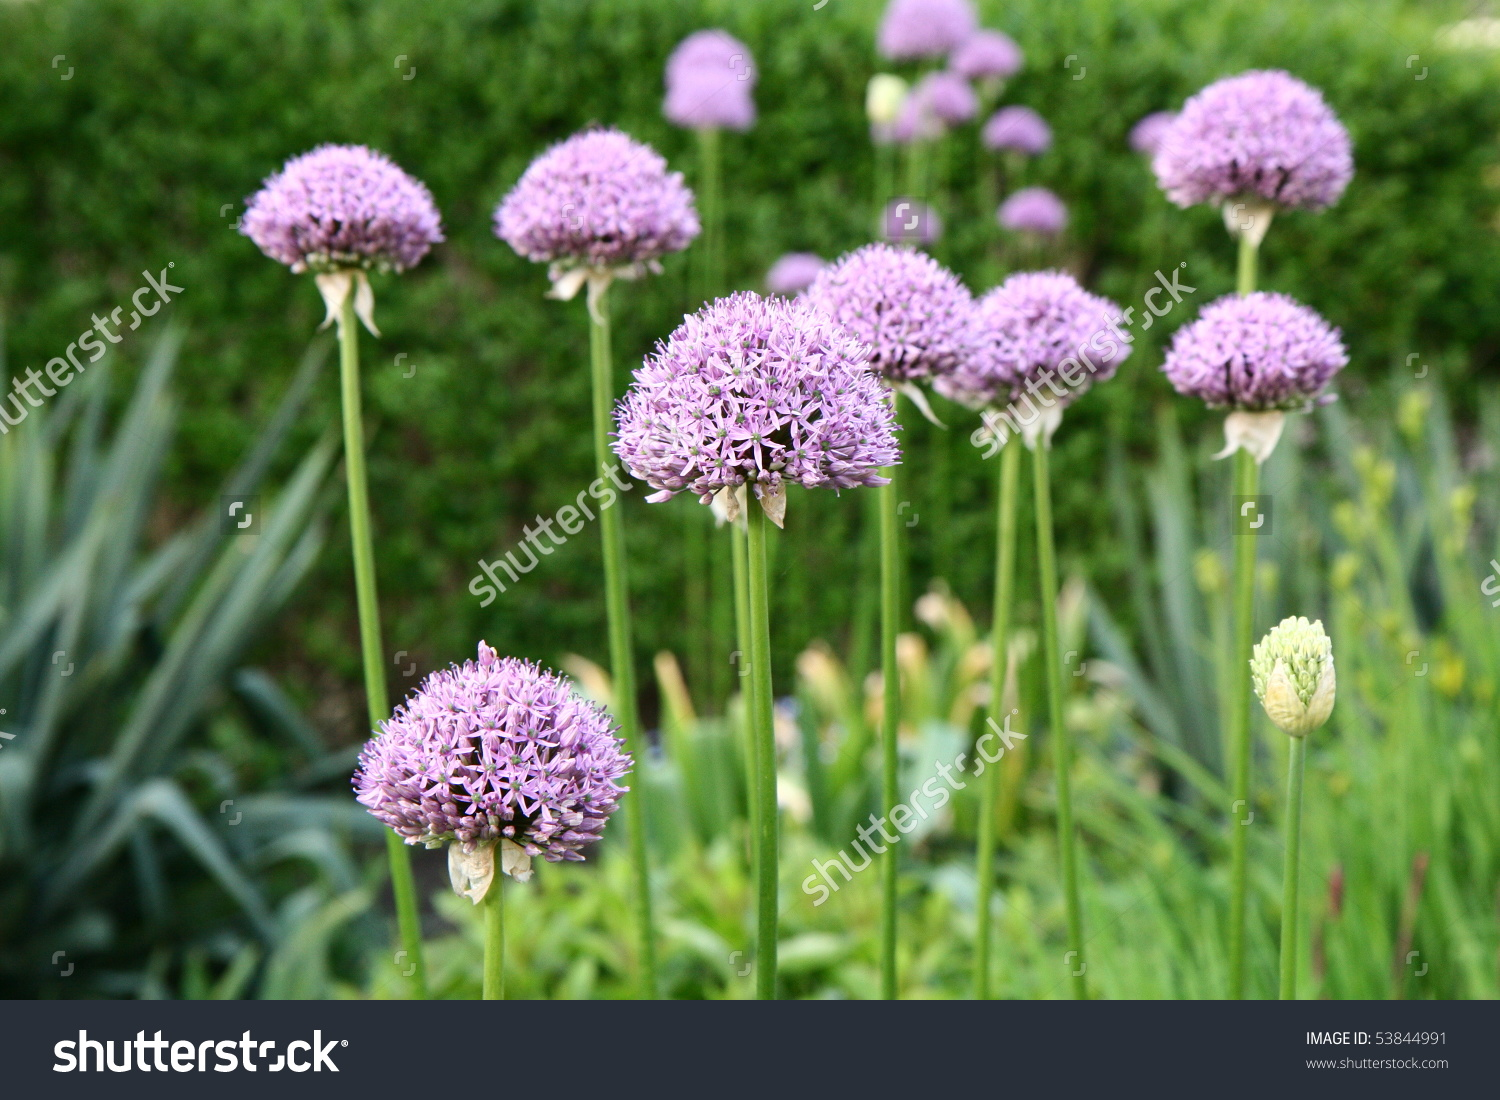 Giant Onion (Allium Giganteum) Blooming In A Garden Stock Photo.